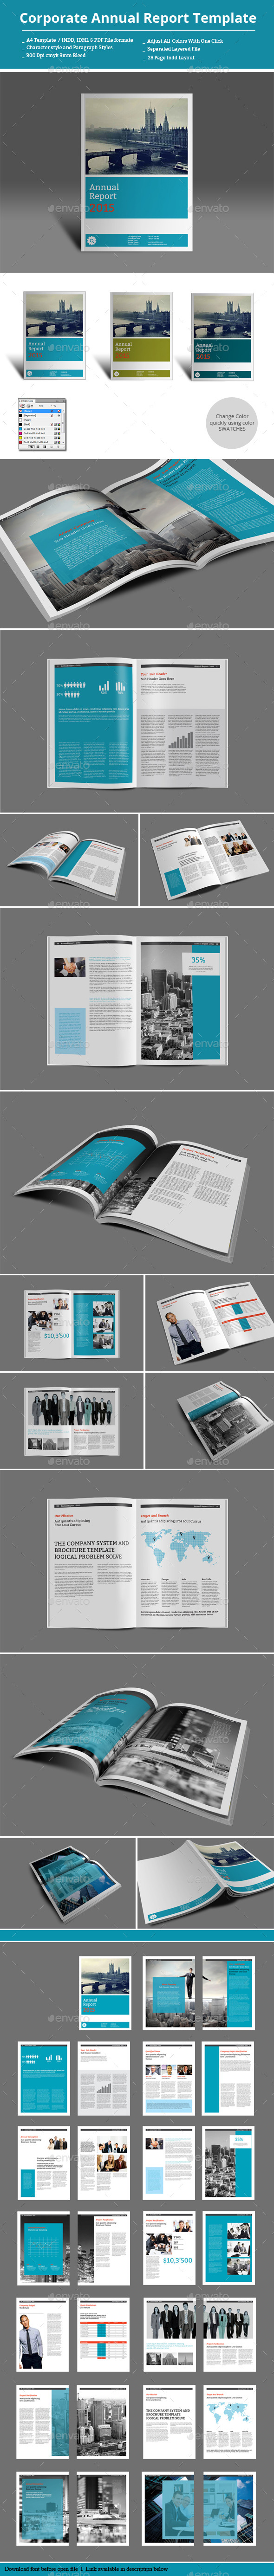 Corporate Annual Report Template - Informational Brochures